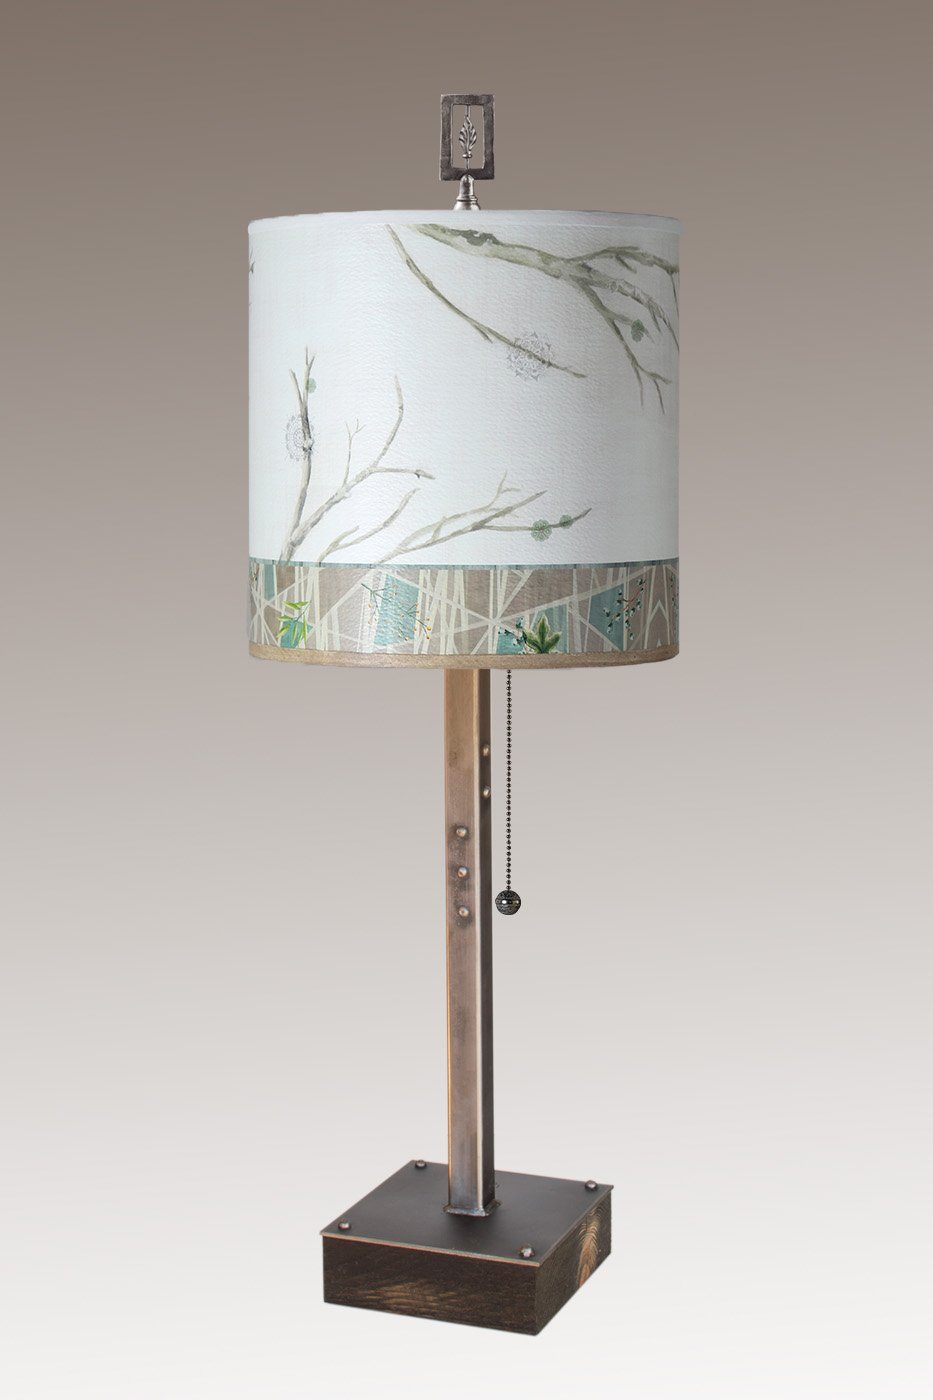 Steel Table Lamp on Wood with Medium Drum Shade in Prism Branch